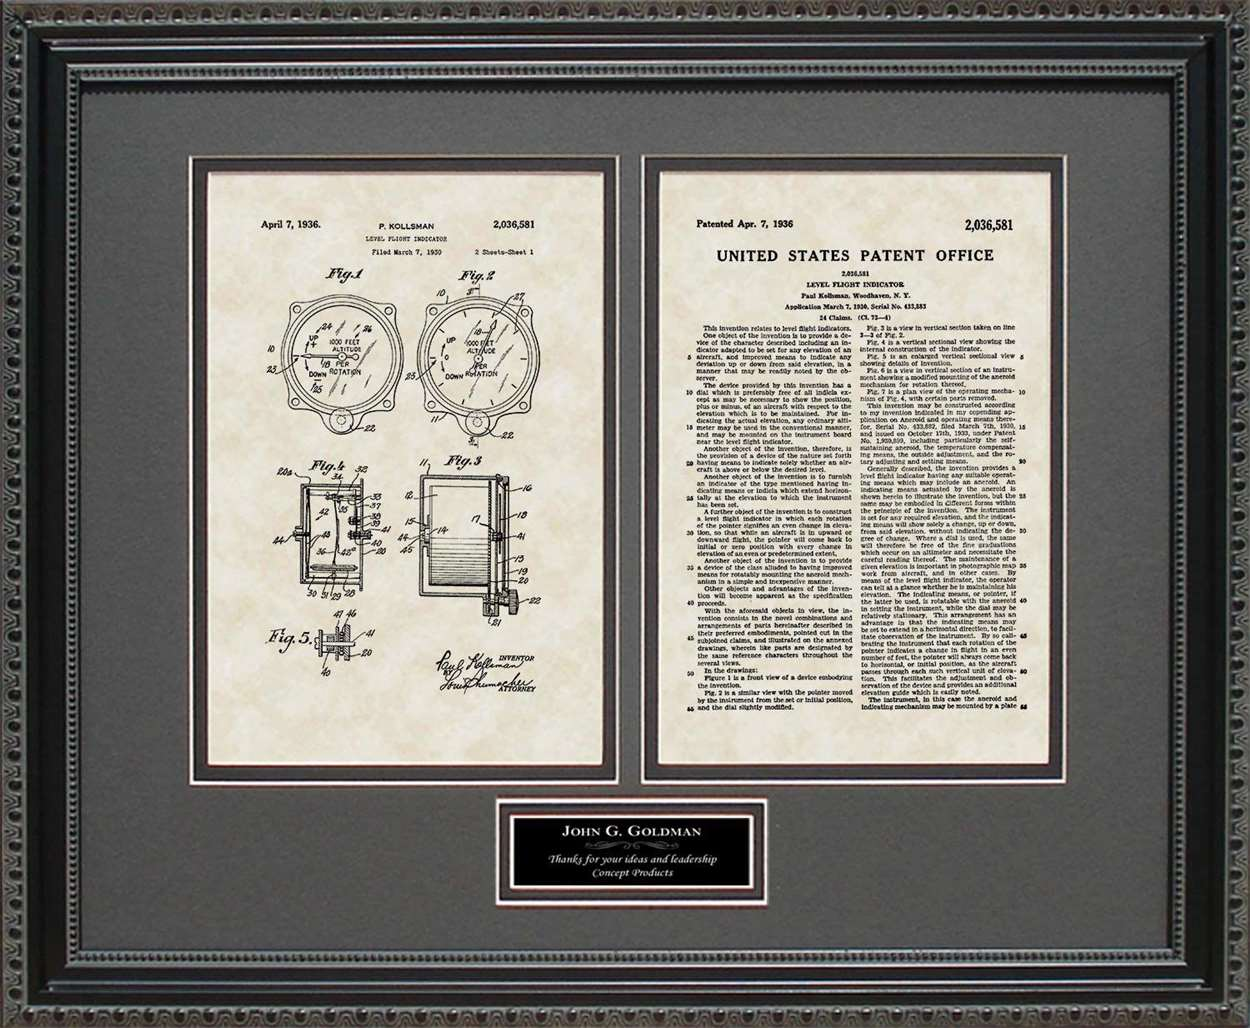 Personalized Altimeter Patent, Art & Copy, Kollsman, 1936